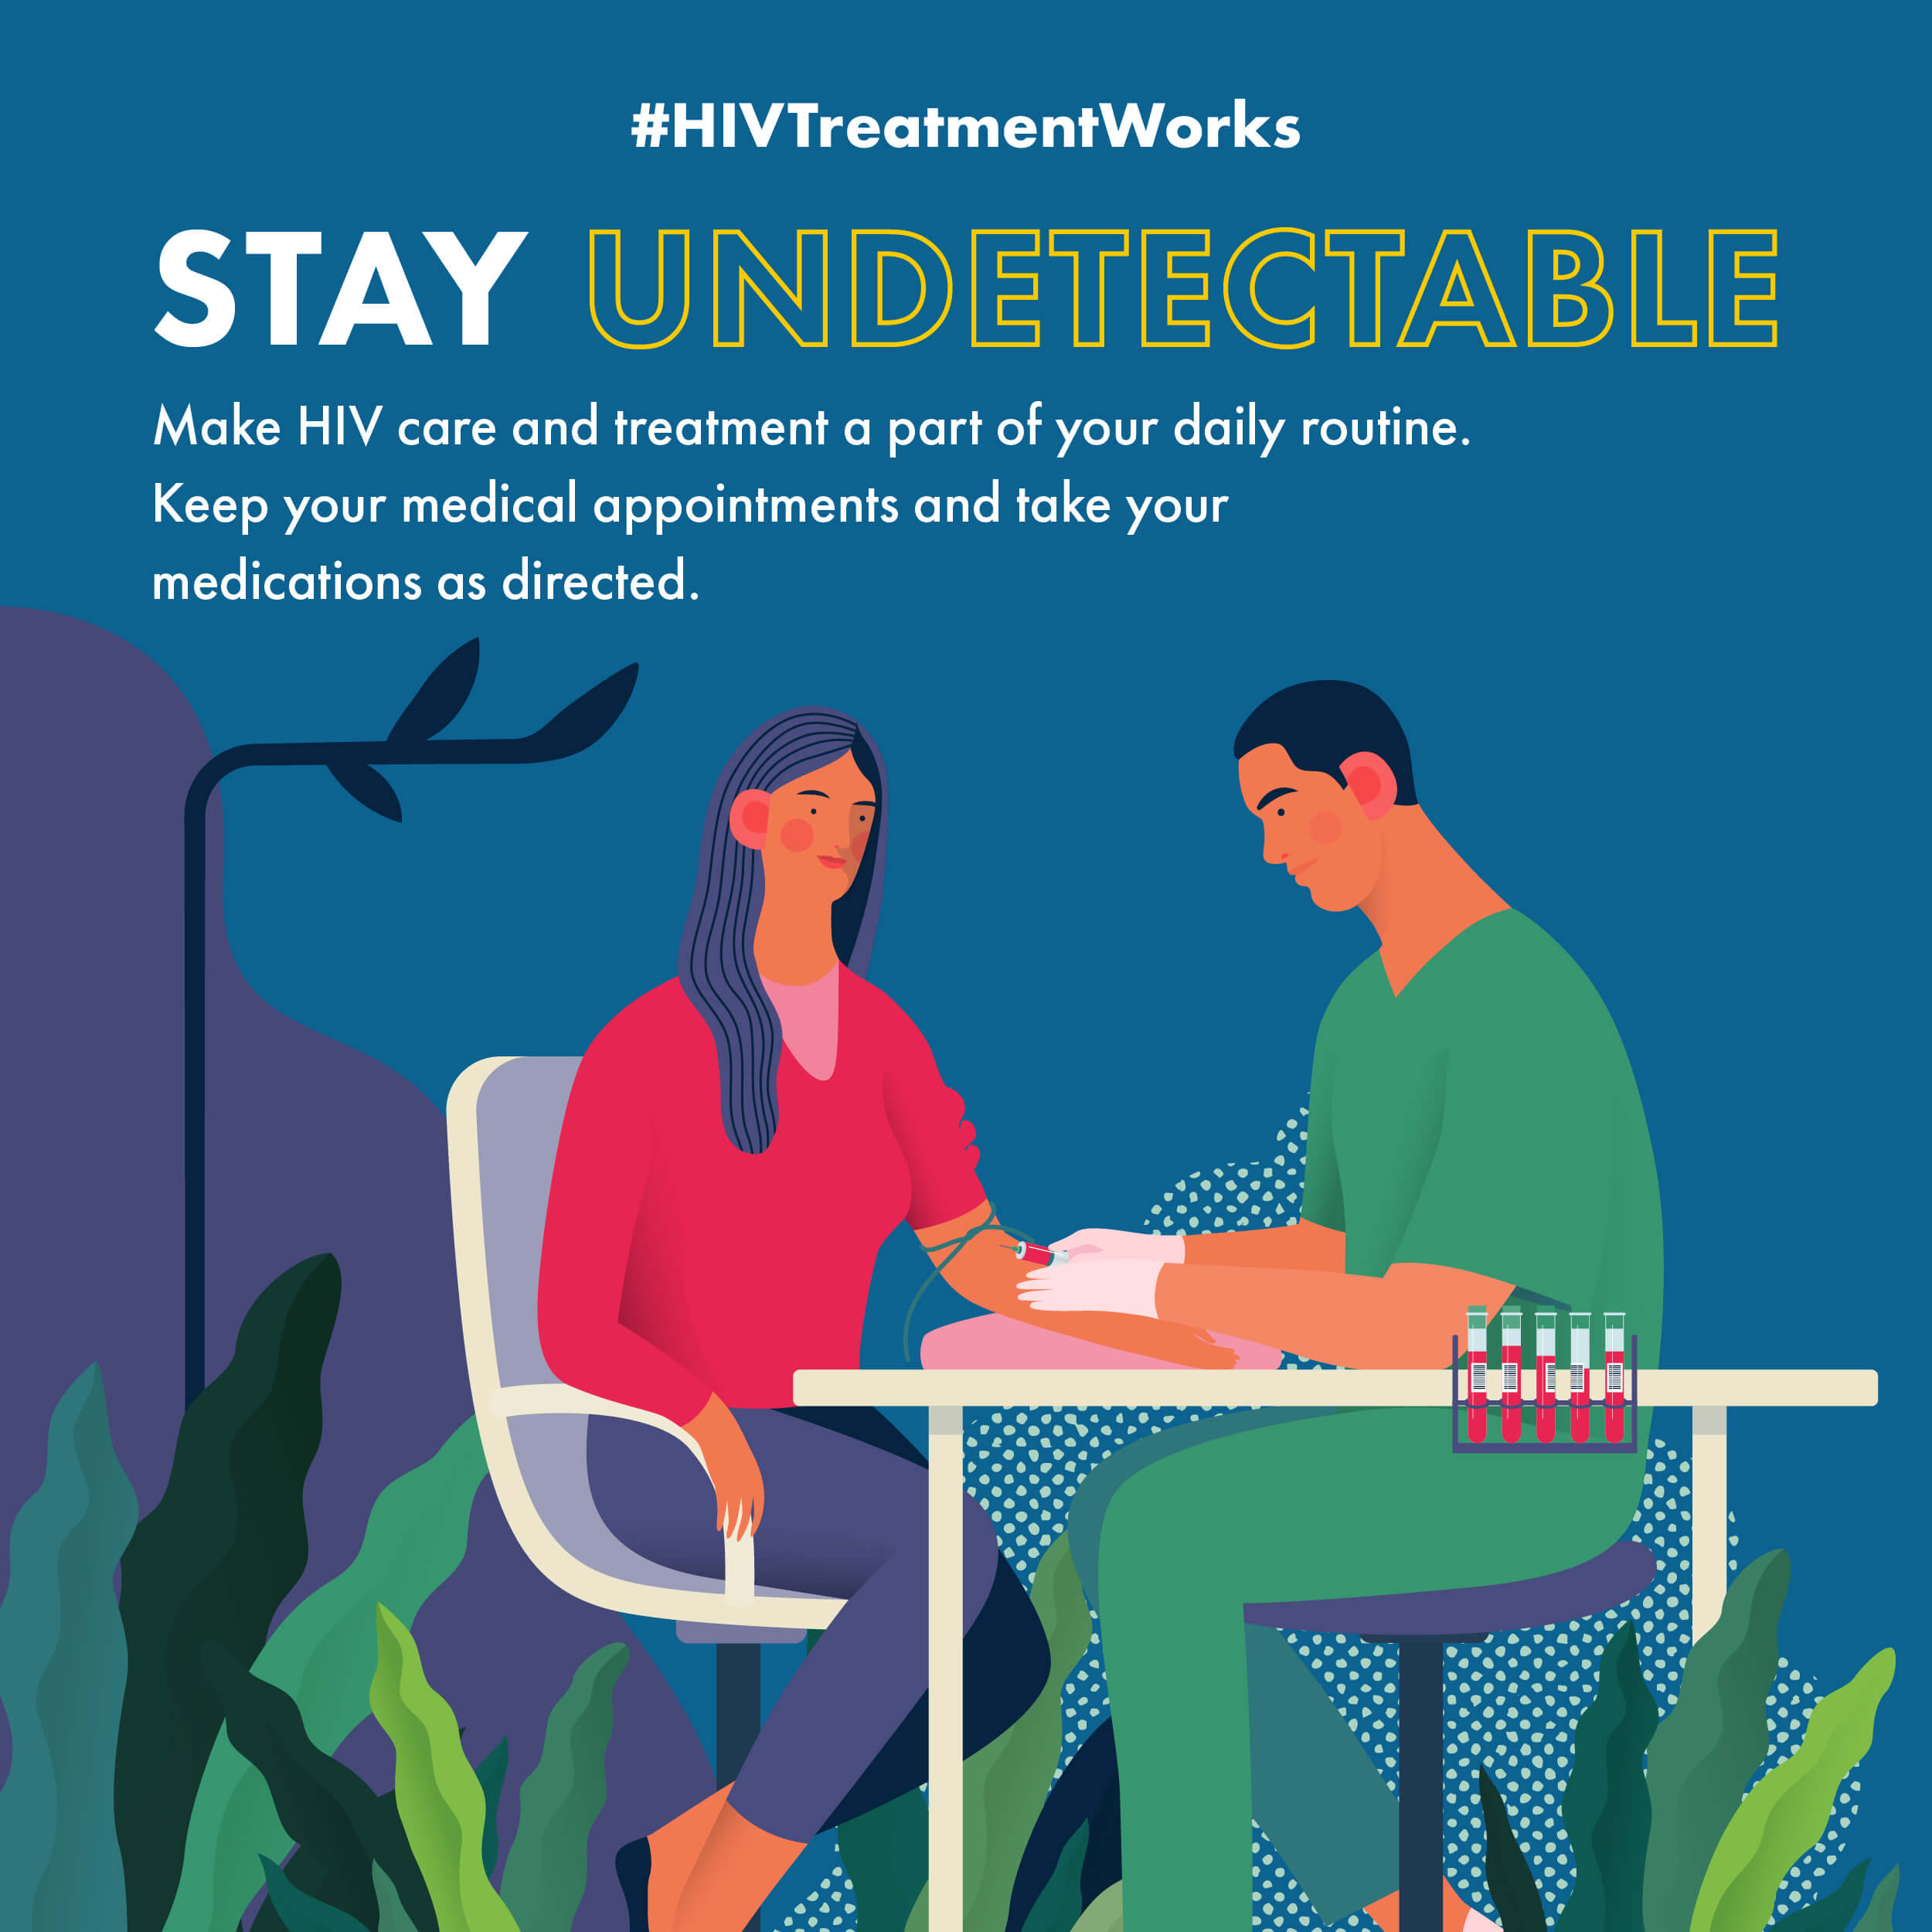 Stay Undetectable. Make HIV care and treatment a part of your daily routine. Keep your medical appointments and take your medications as directed.